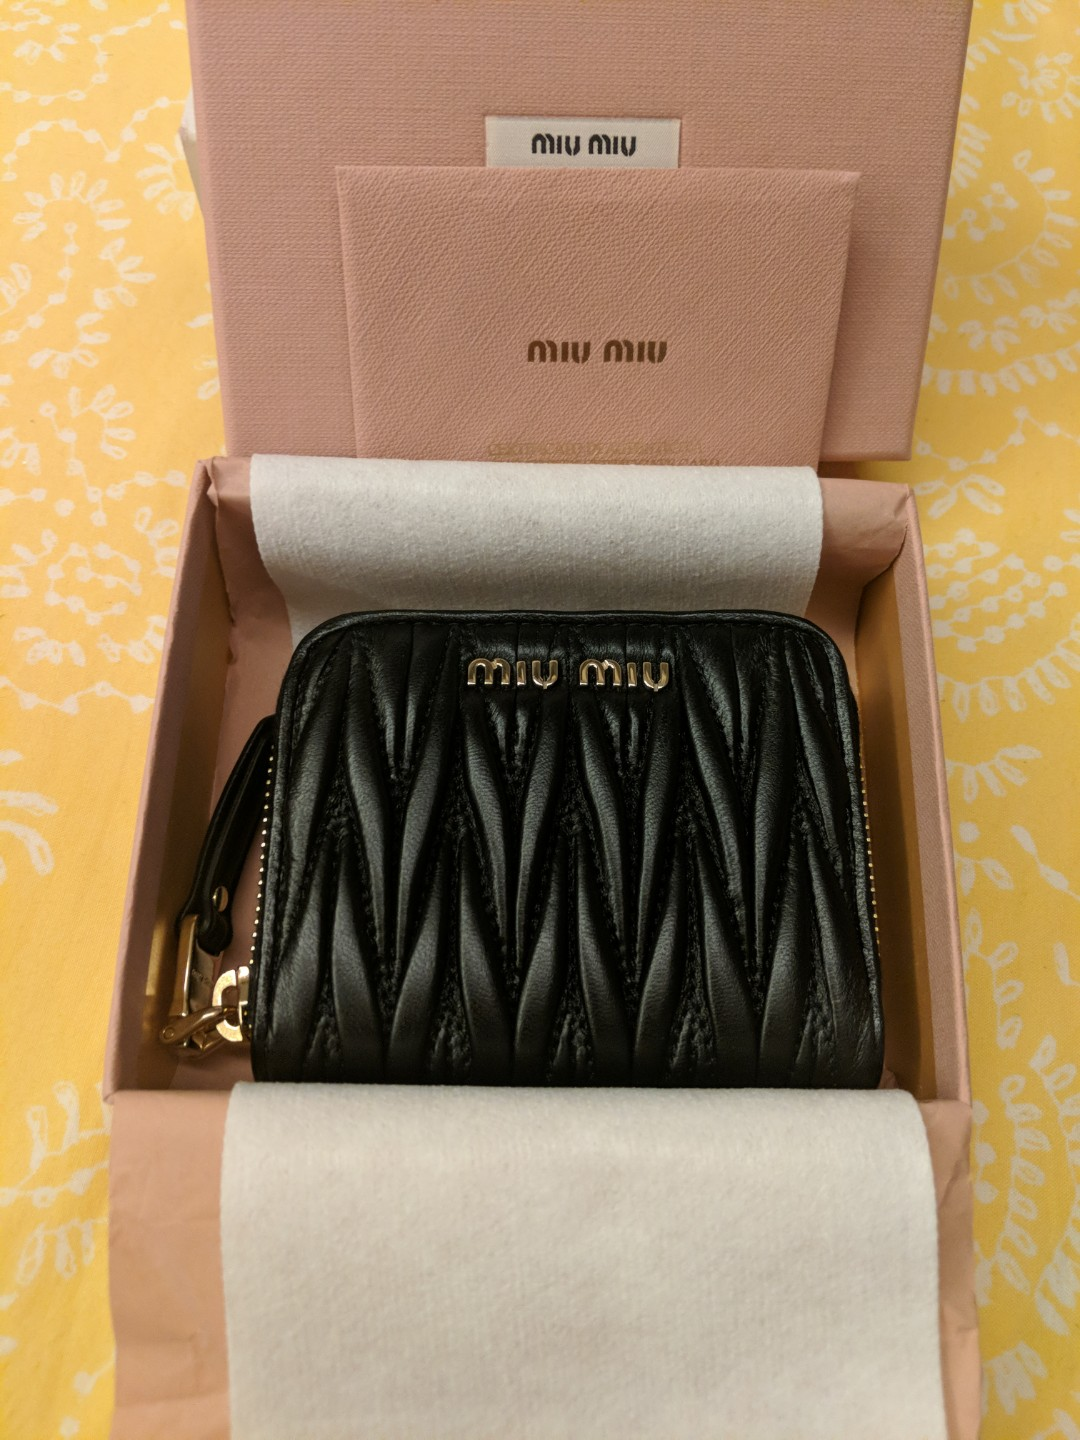 2c9ffc9f7 Miu miu coin/card purse (5MM268), Luxury, Bags & Wallets, Wallets on  Carousell